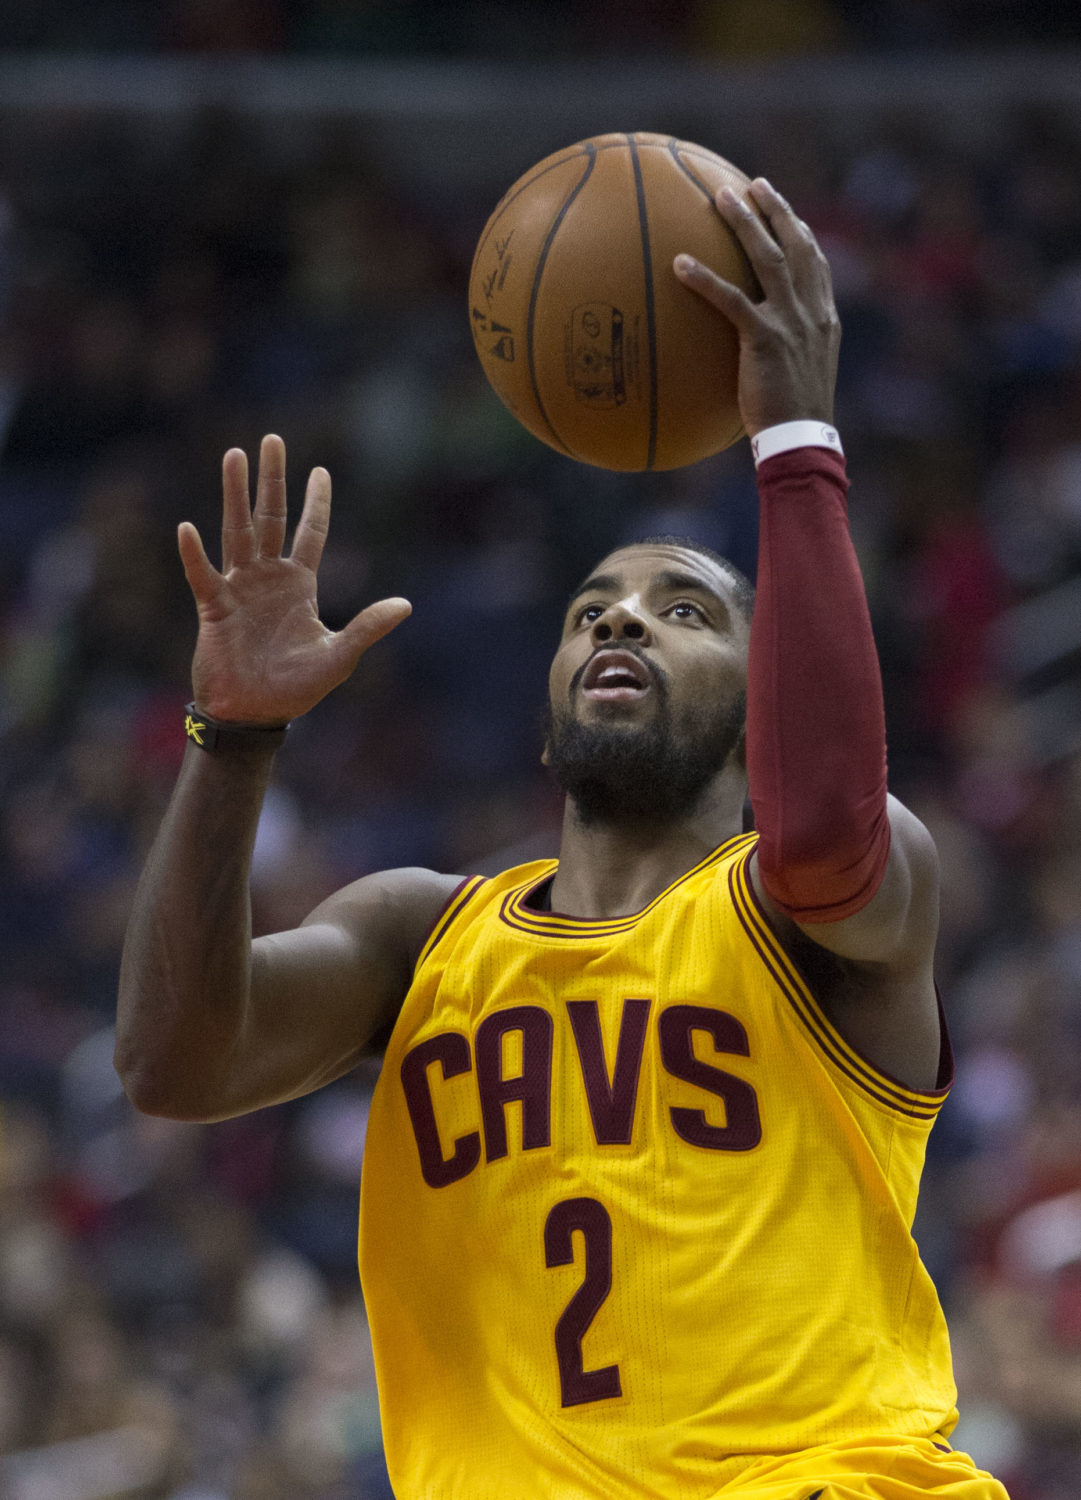 a farewell to the impossible kyrie irving hanif willis